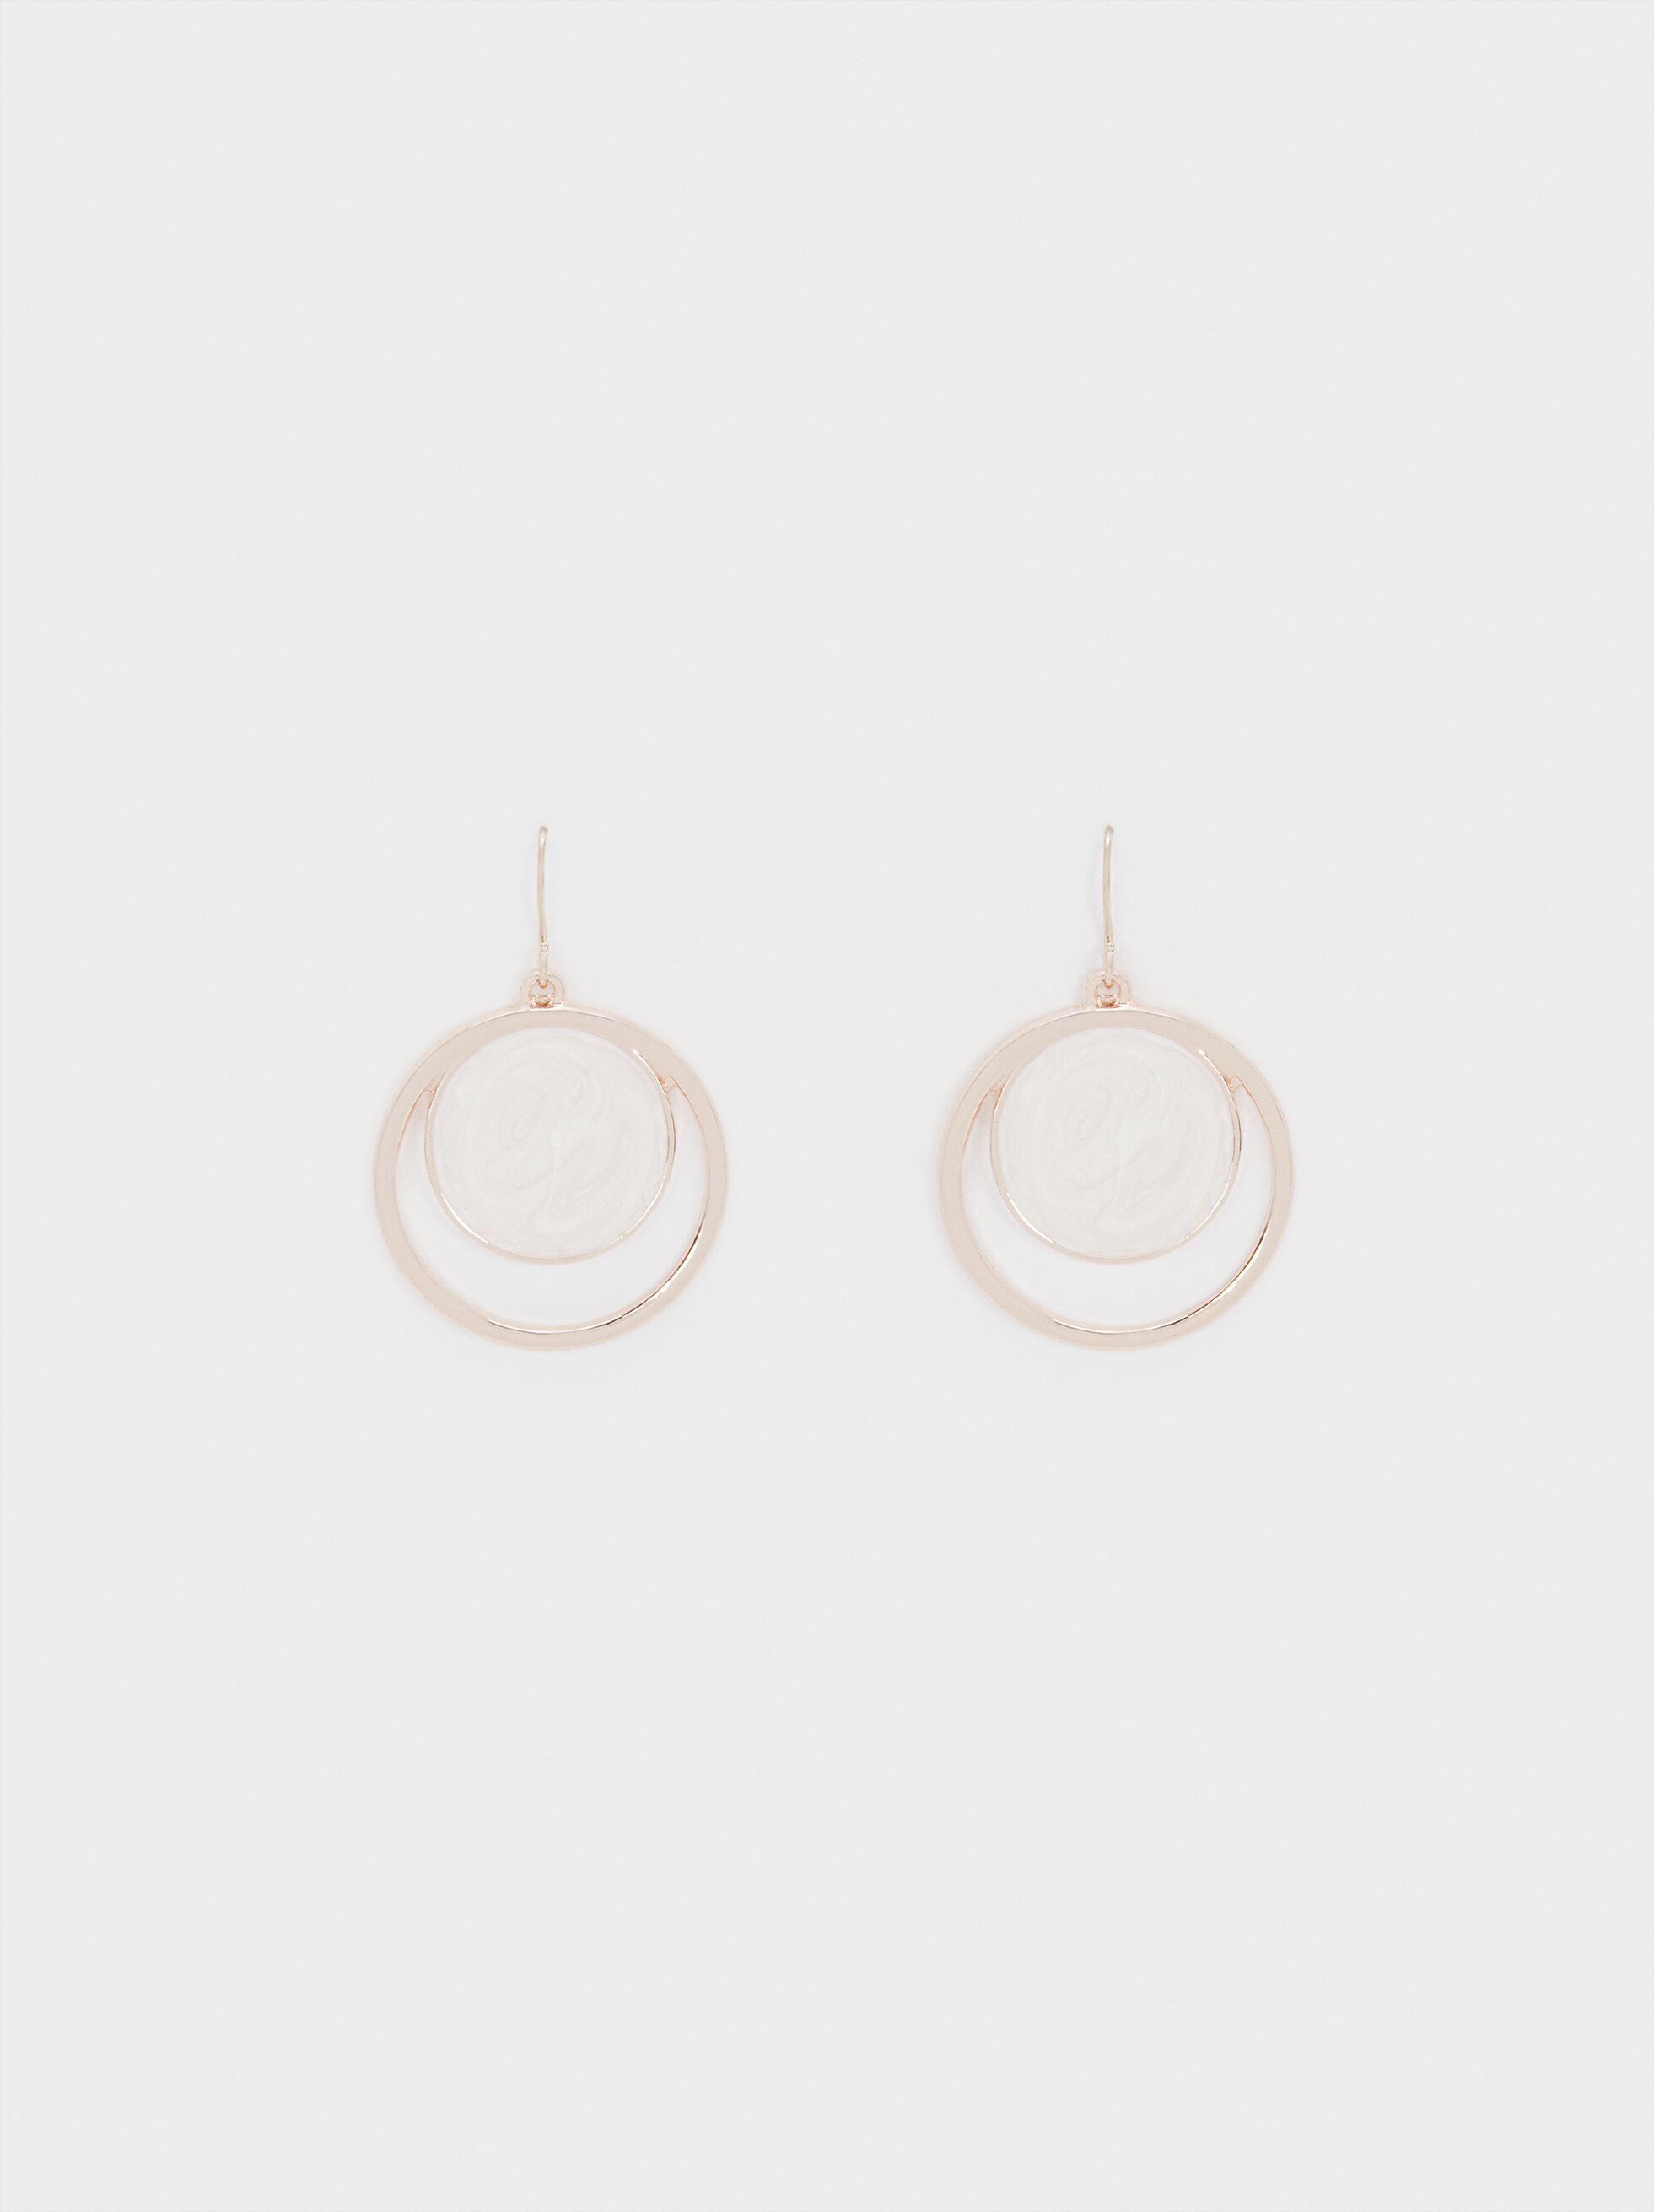 Medium Rose Gold Earrings, Orange, hi-res